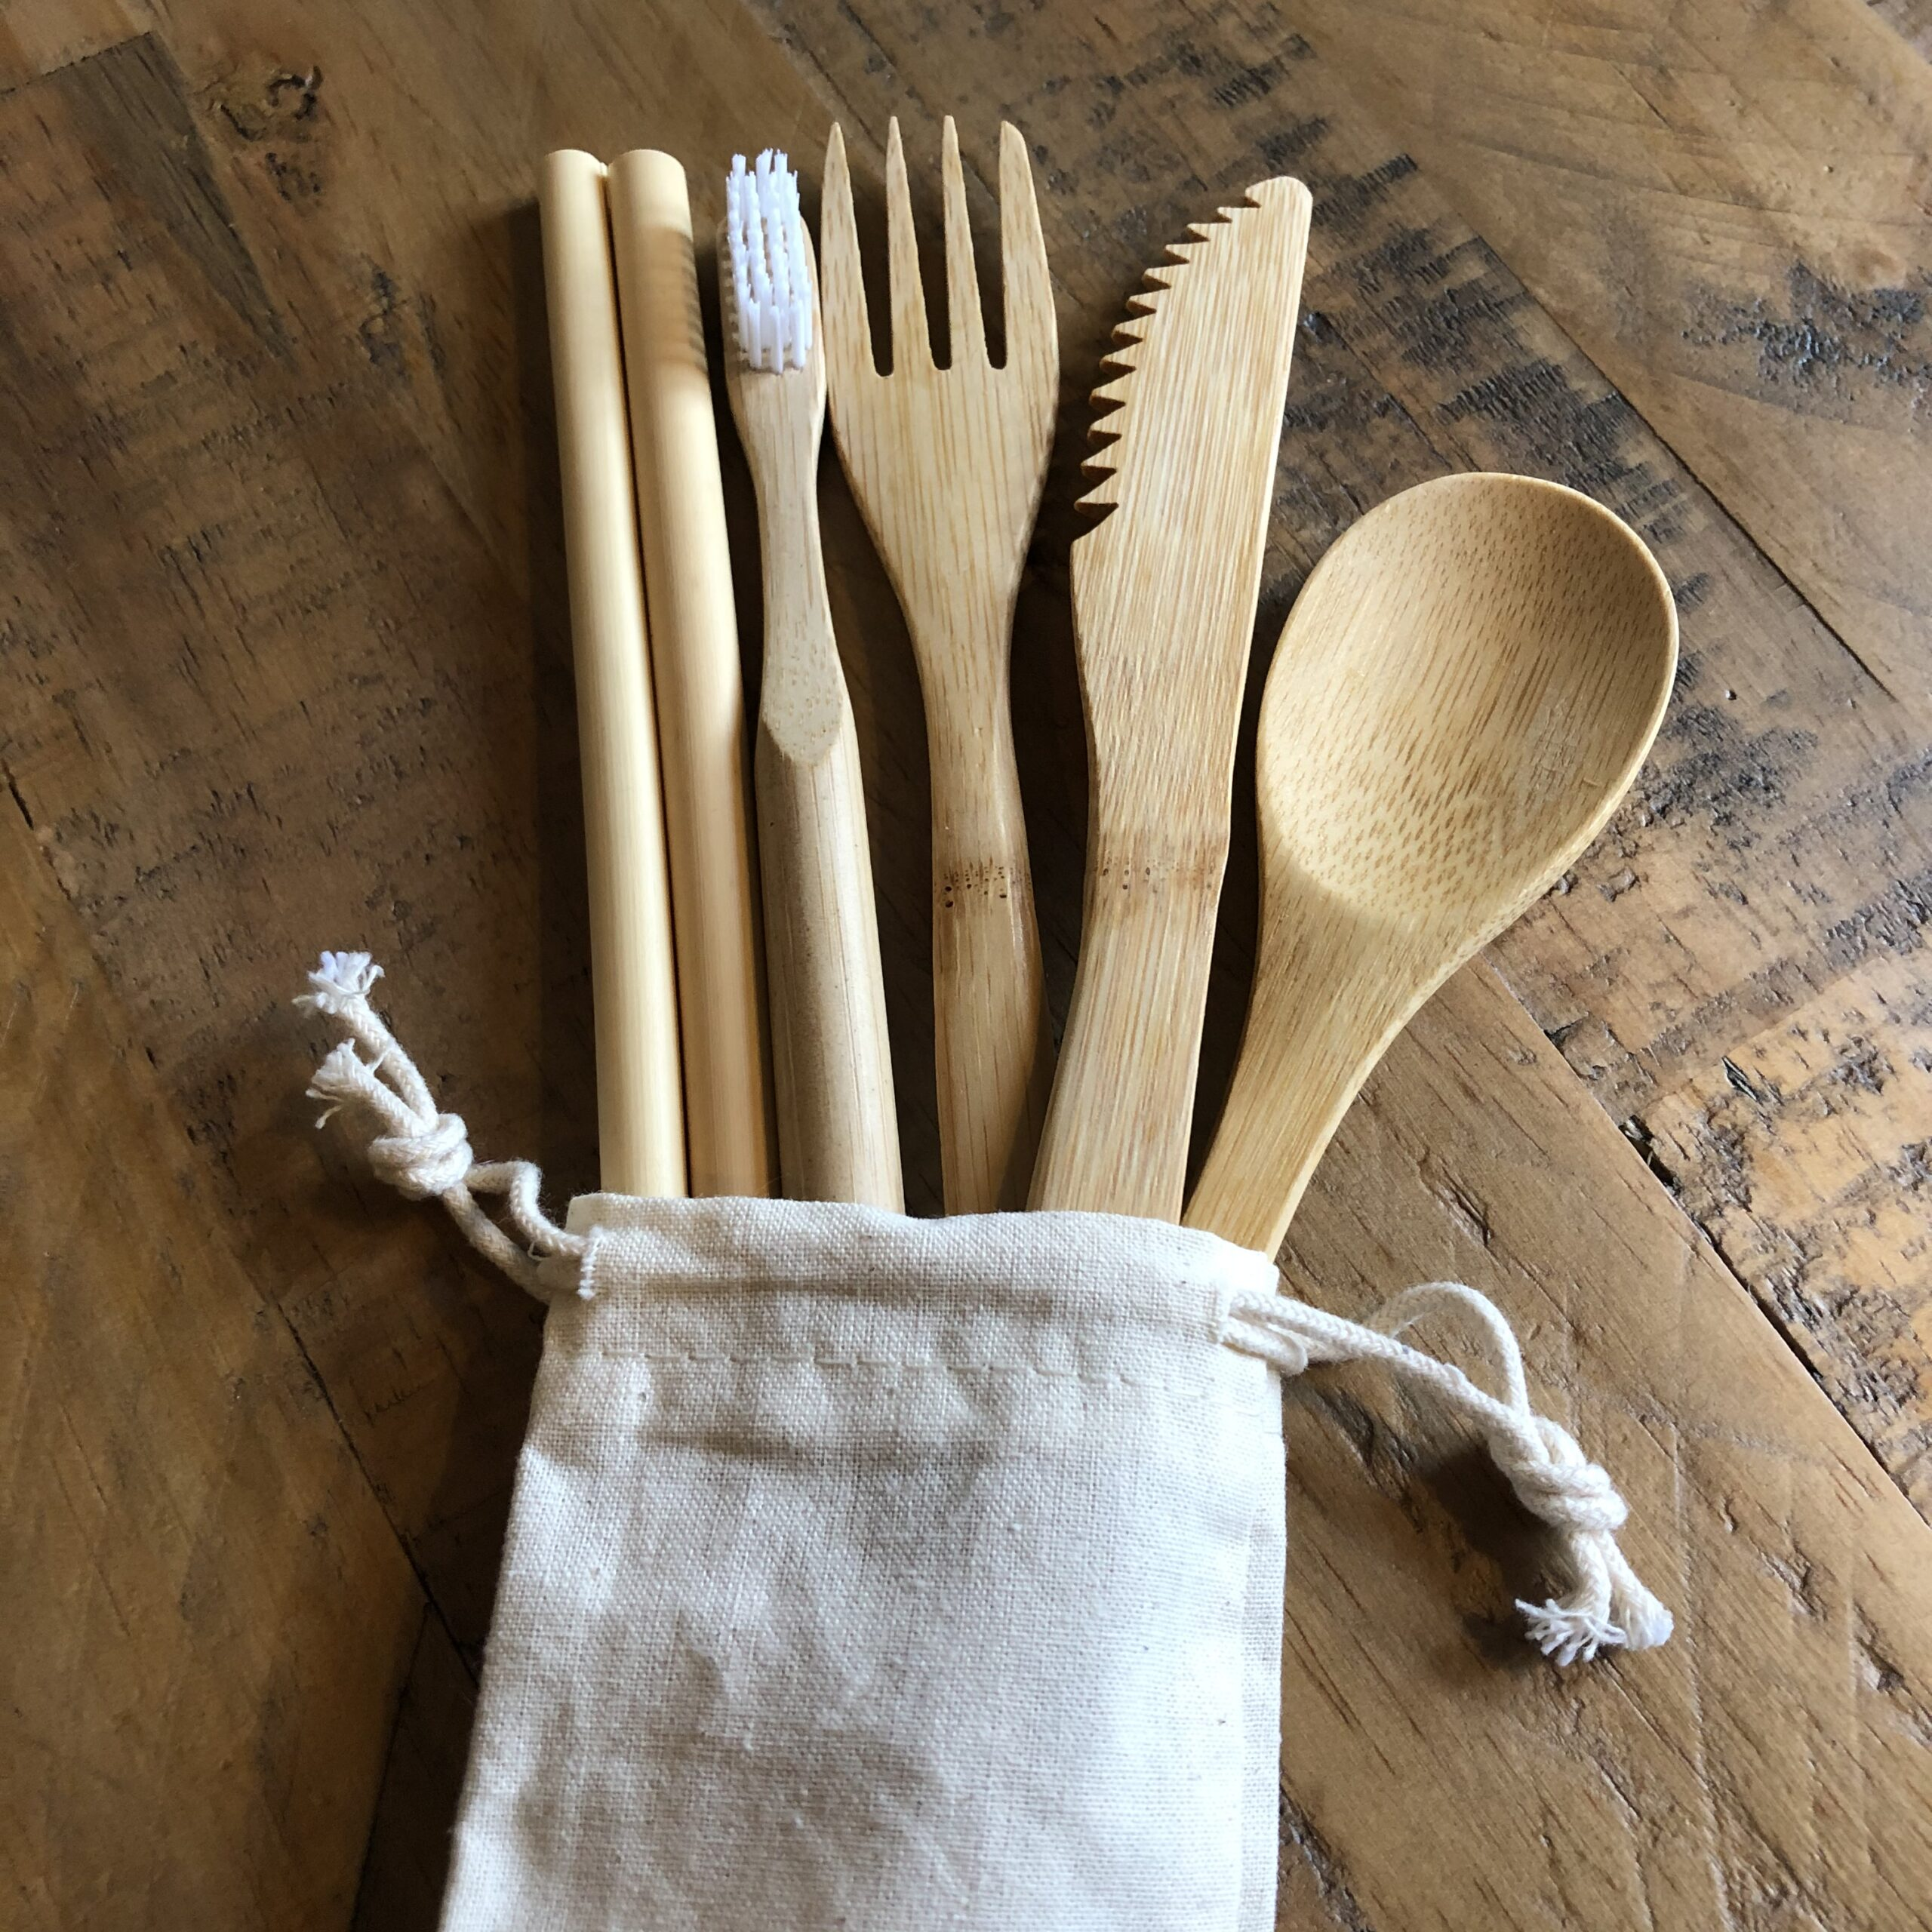 Zero Waste Starter Set   Eco Friendly Gift Set   Bamboo Cutlery, Toothbrush and Straw Set